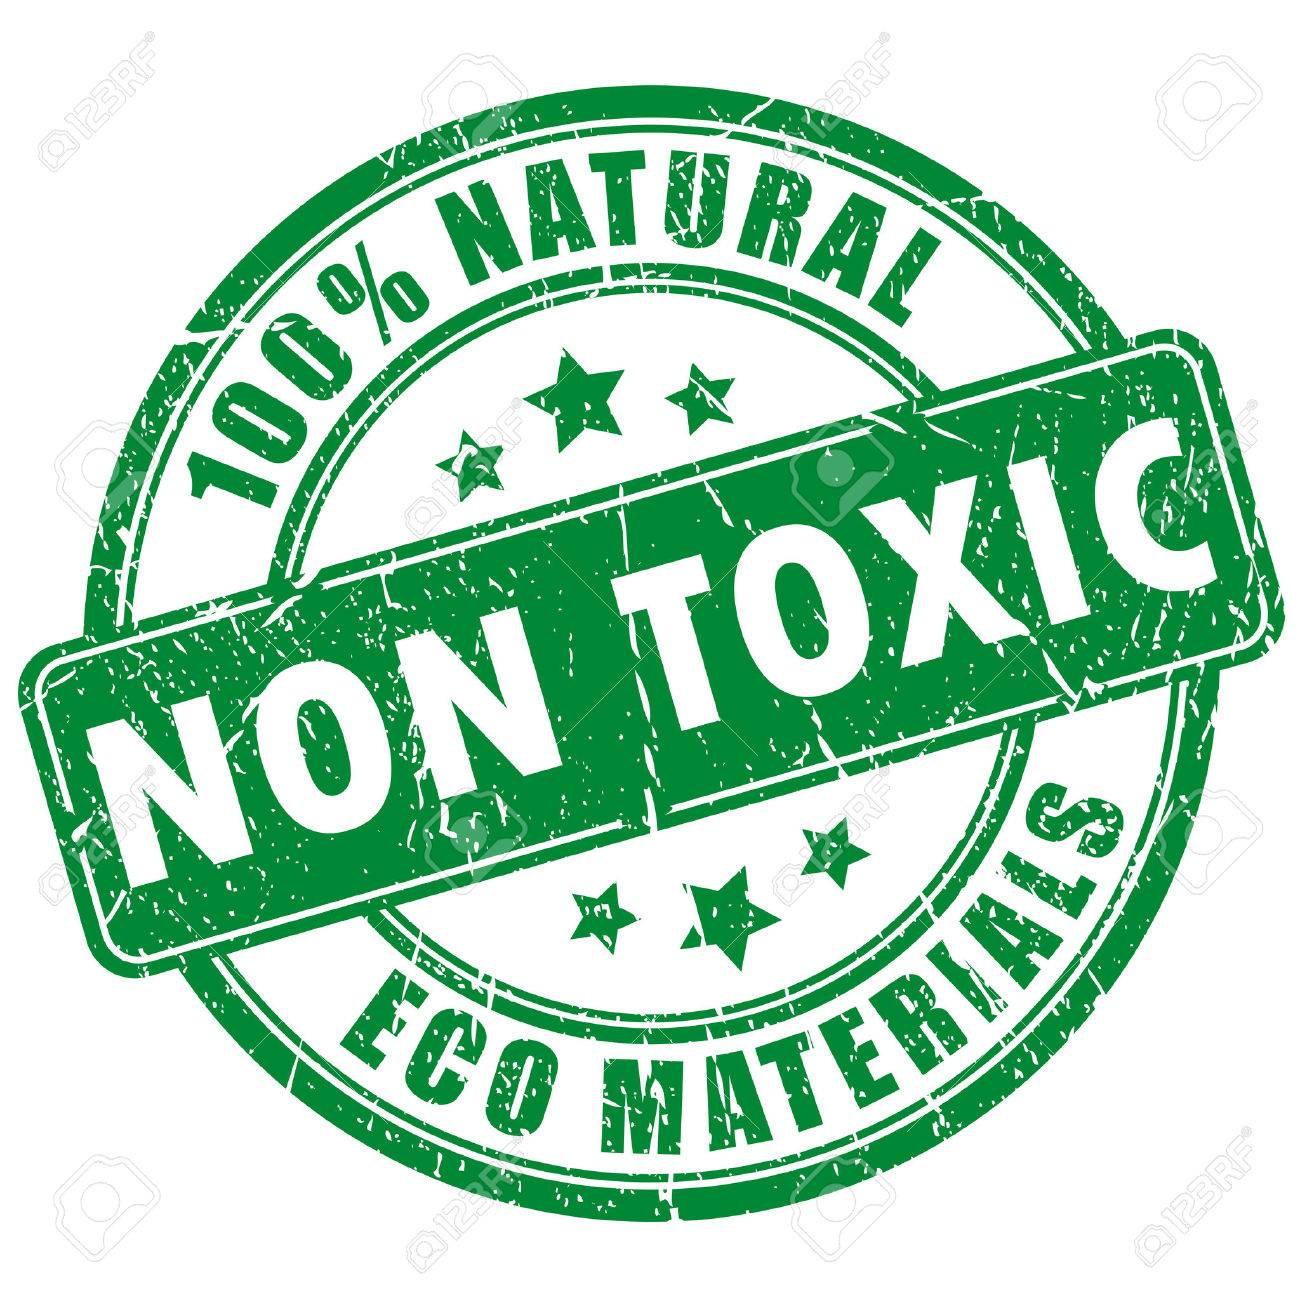 Non toxic product stamp - 41919565